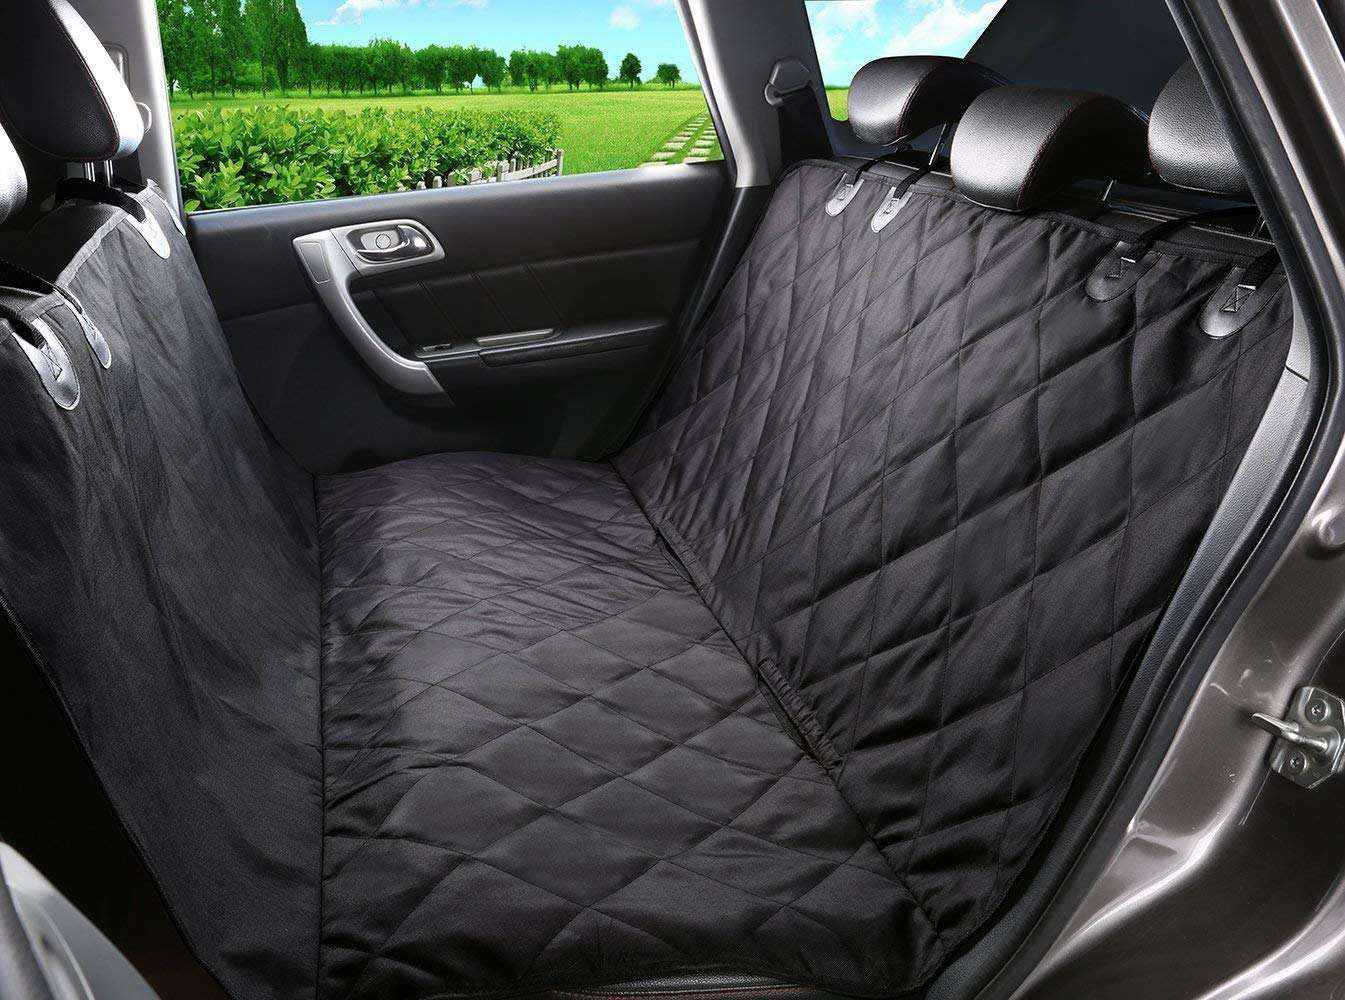 Dtemple Pet Dog Back Seat Cover Non-Slip Car Seat Protector Waterproof Padded Quilted Convertible Hammock (L57.72 x W53.04 inch, Black) – US Stock